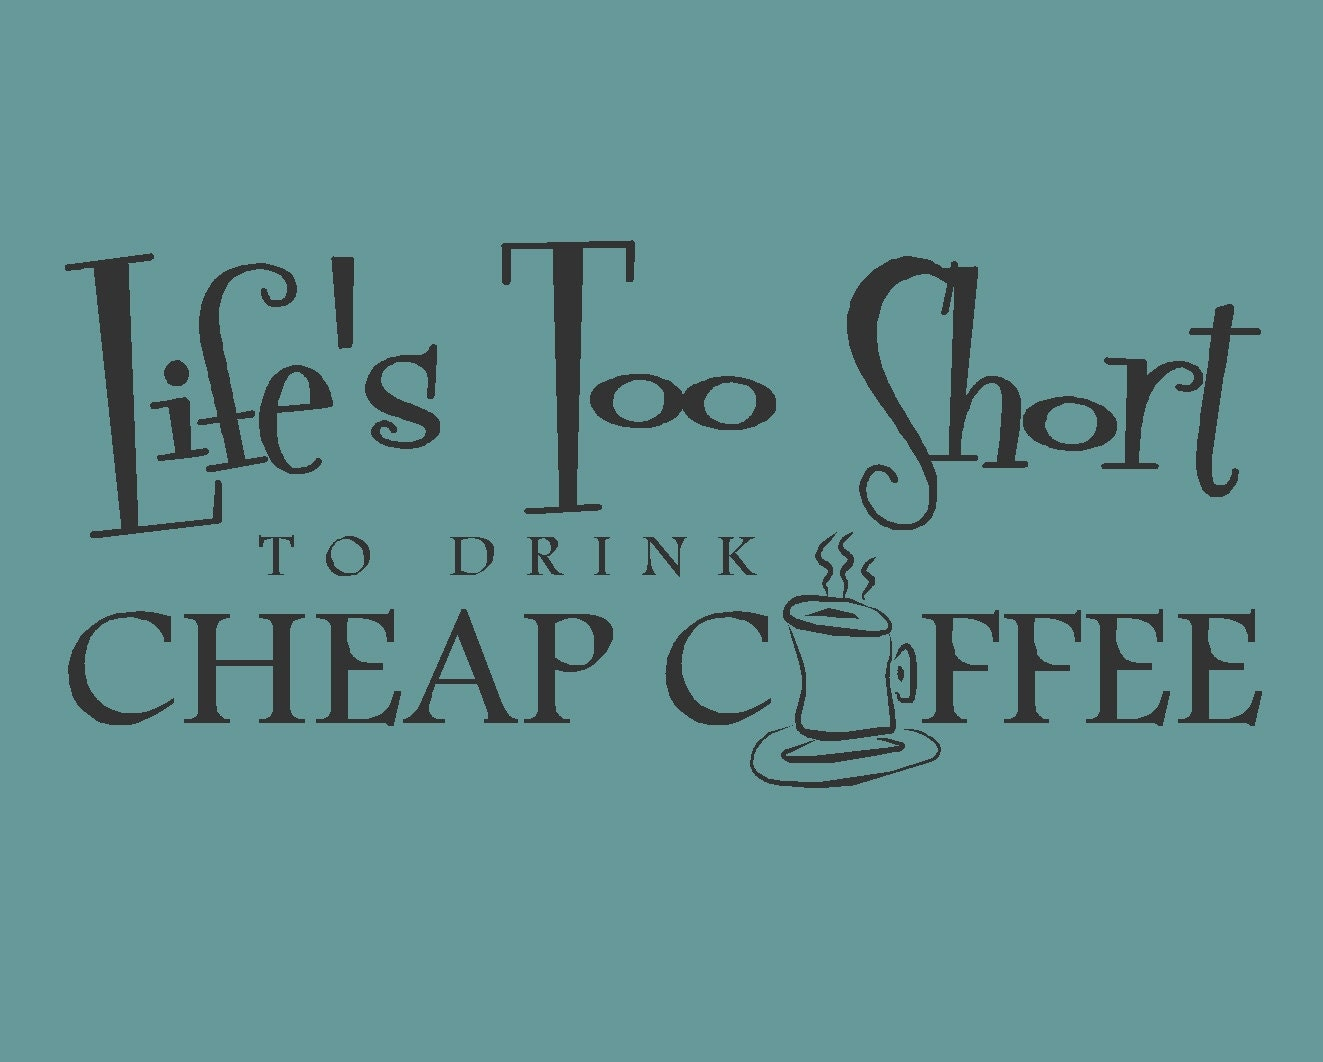 Lifes short drink coffee Vinyl lettering wall words quotes kitchen decals